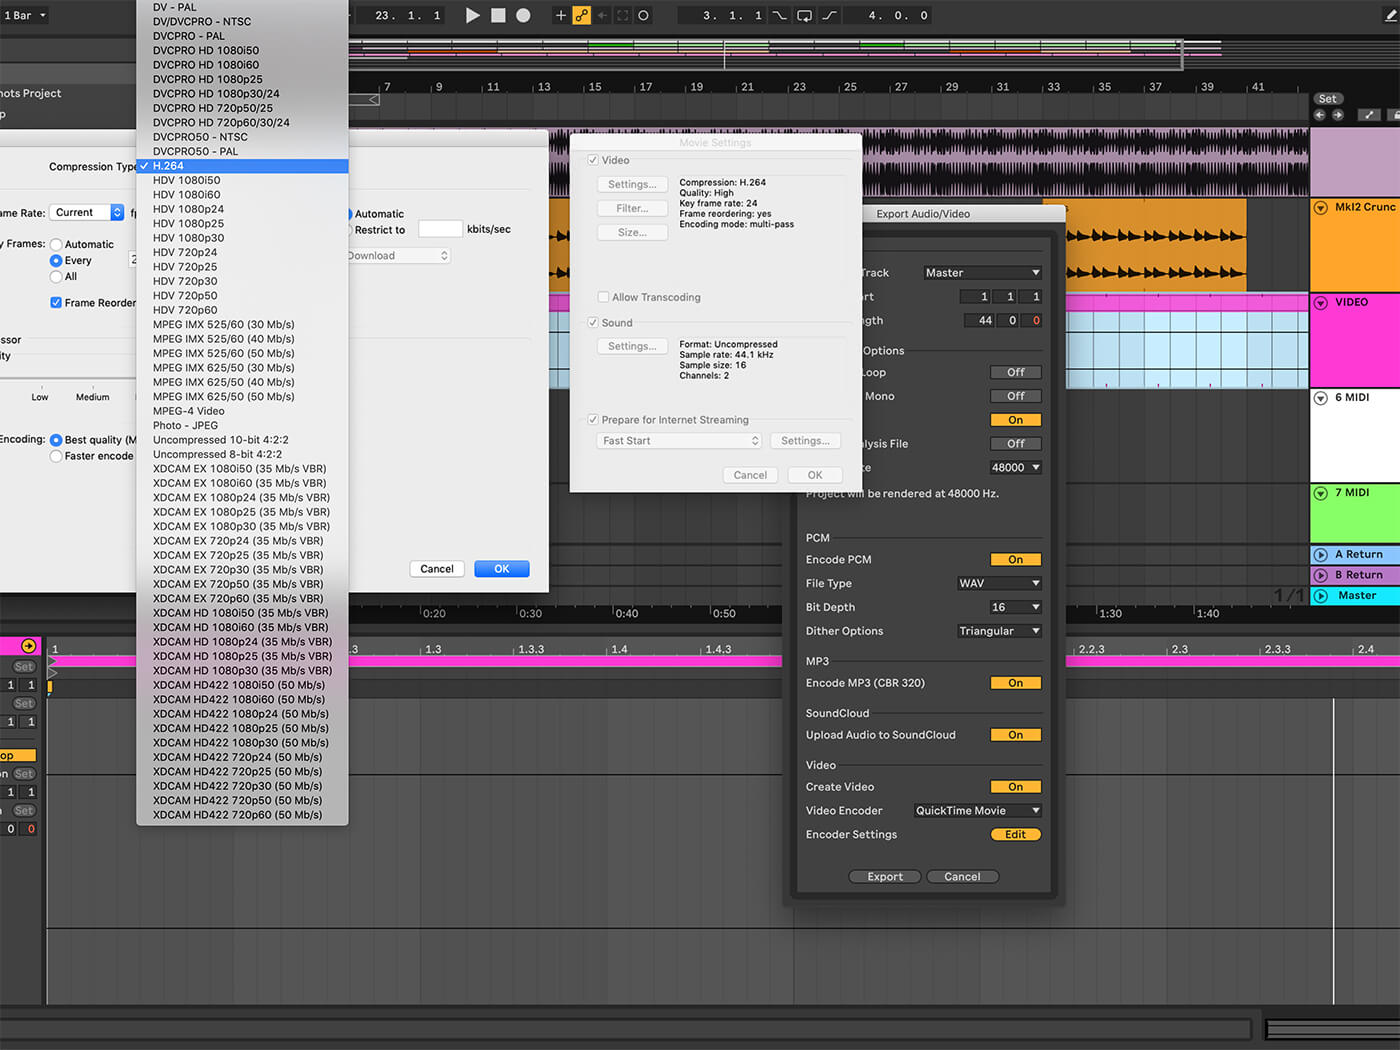 Exporting options in Ableton Live - MusicTech